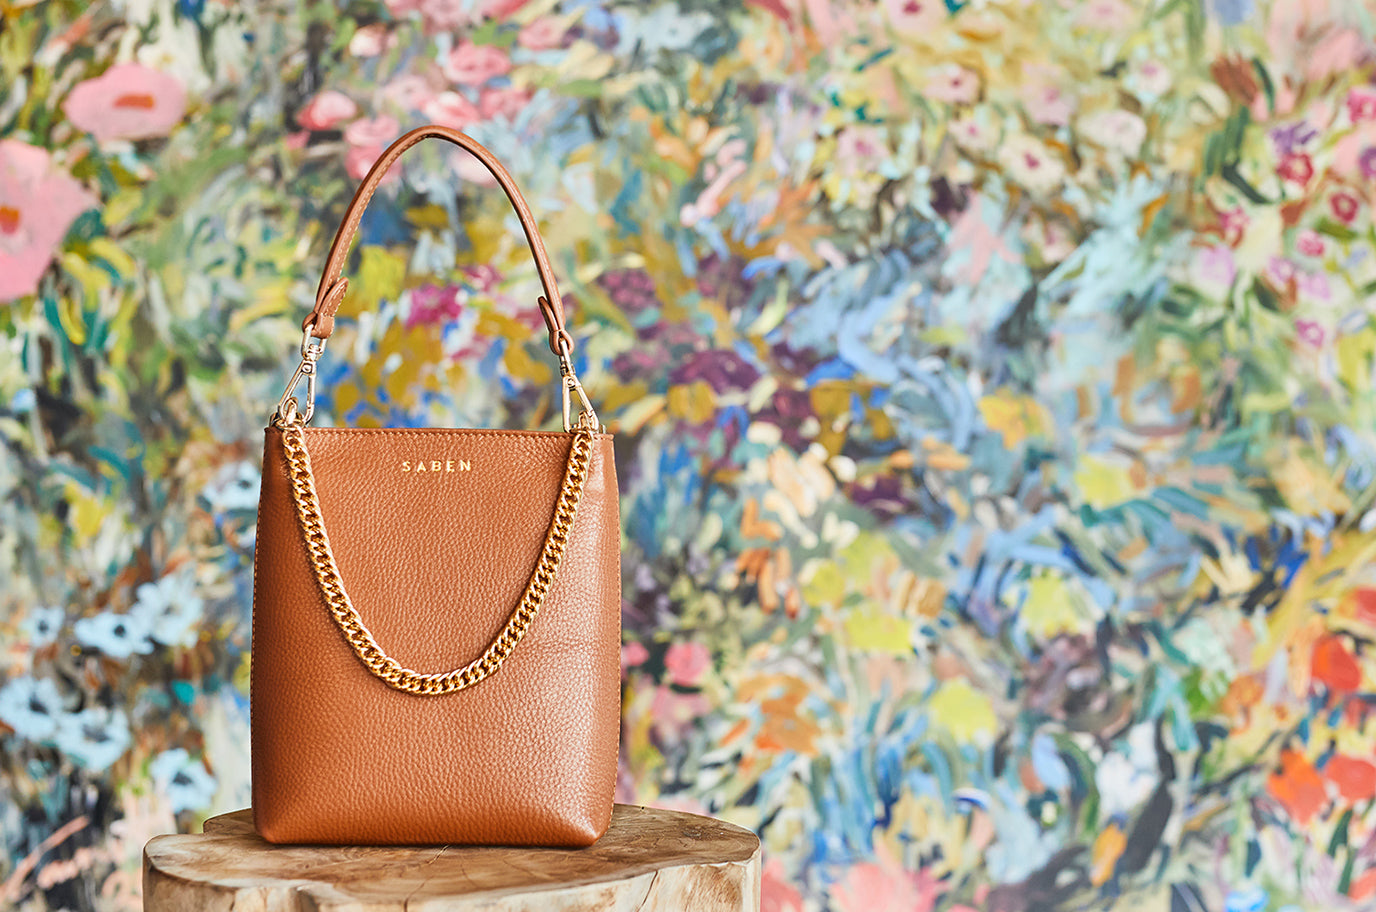 new saben handbag coco in clay colour sitting in front of painting by carmel van der hoeven of turua gallery